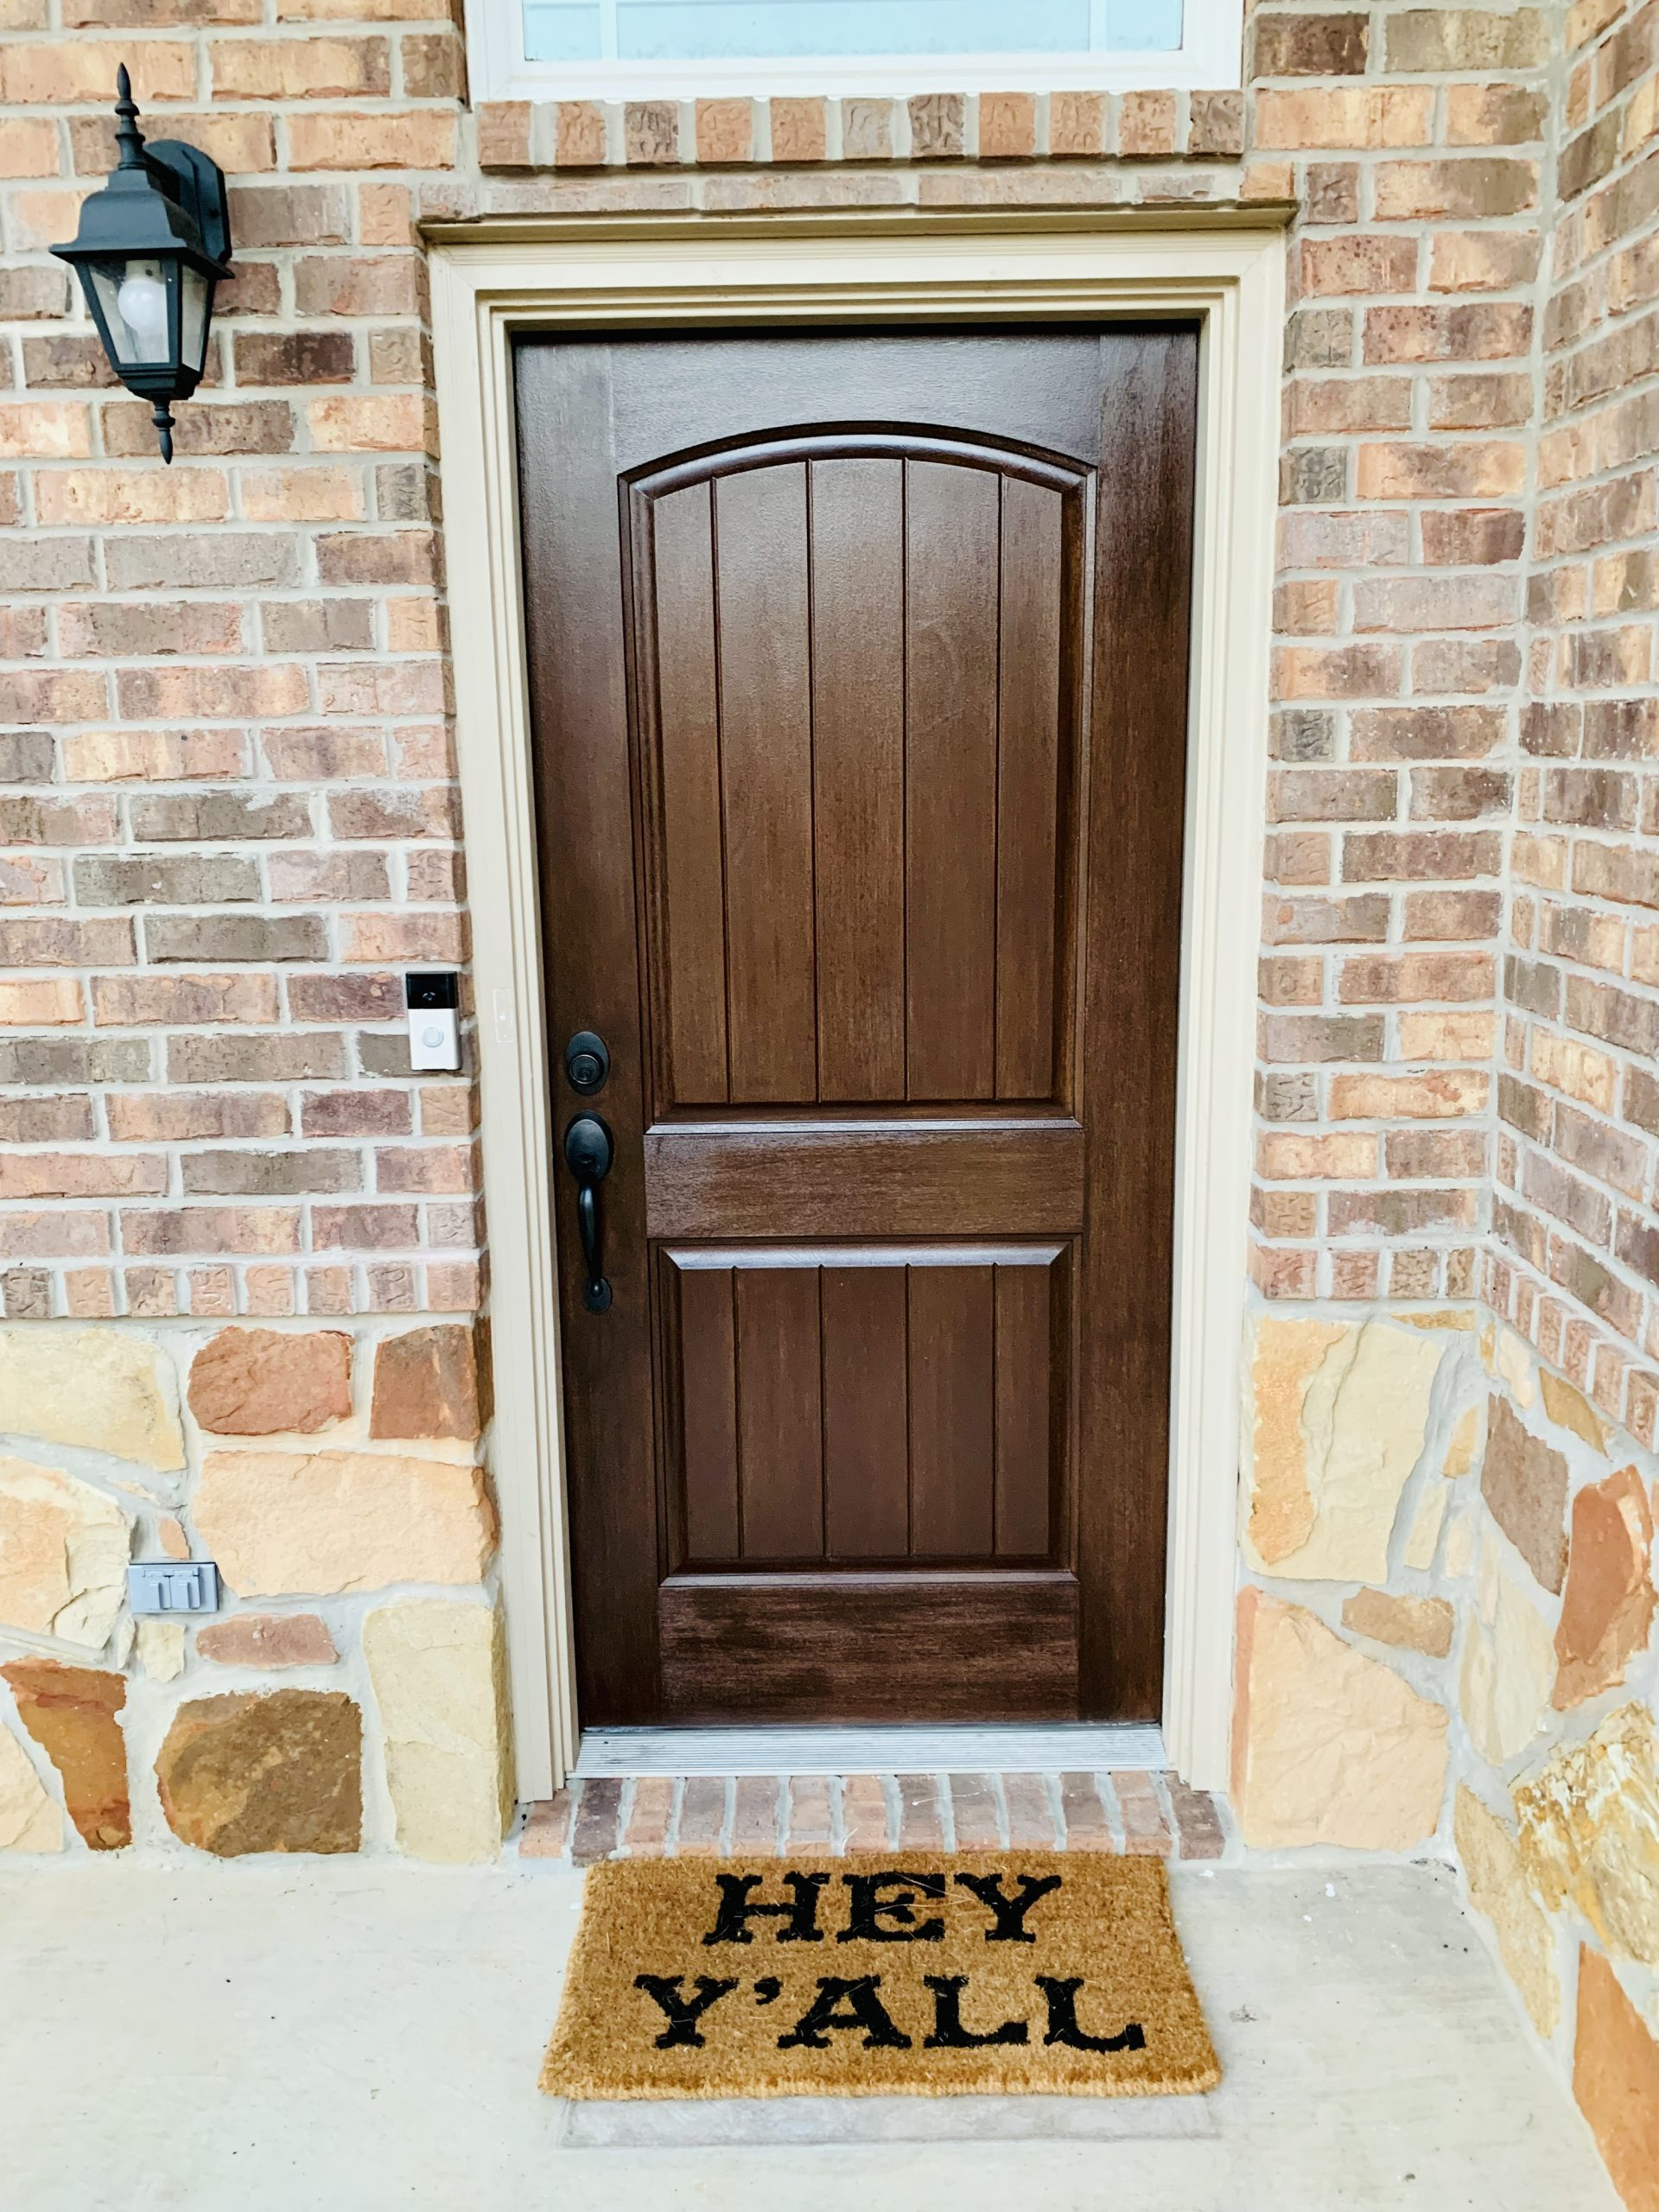 Best Painting Company Tyler TX